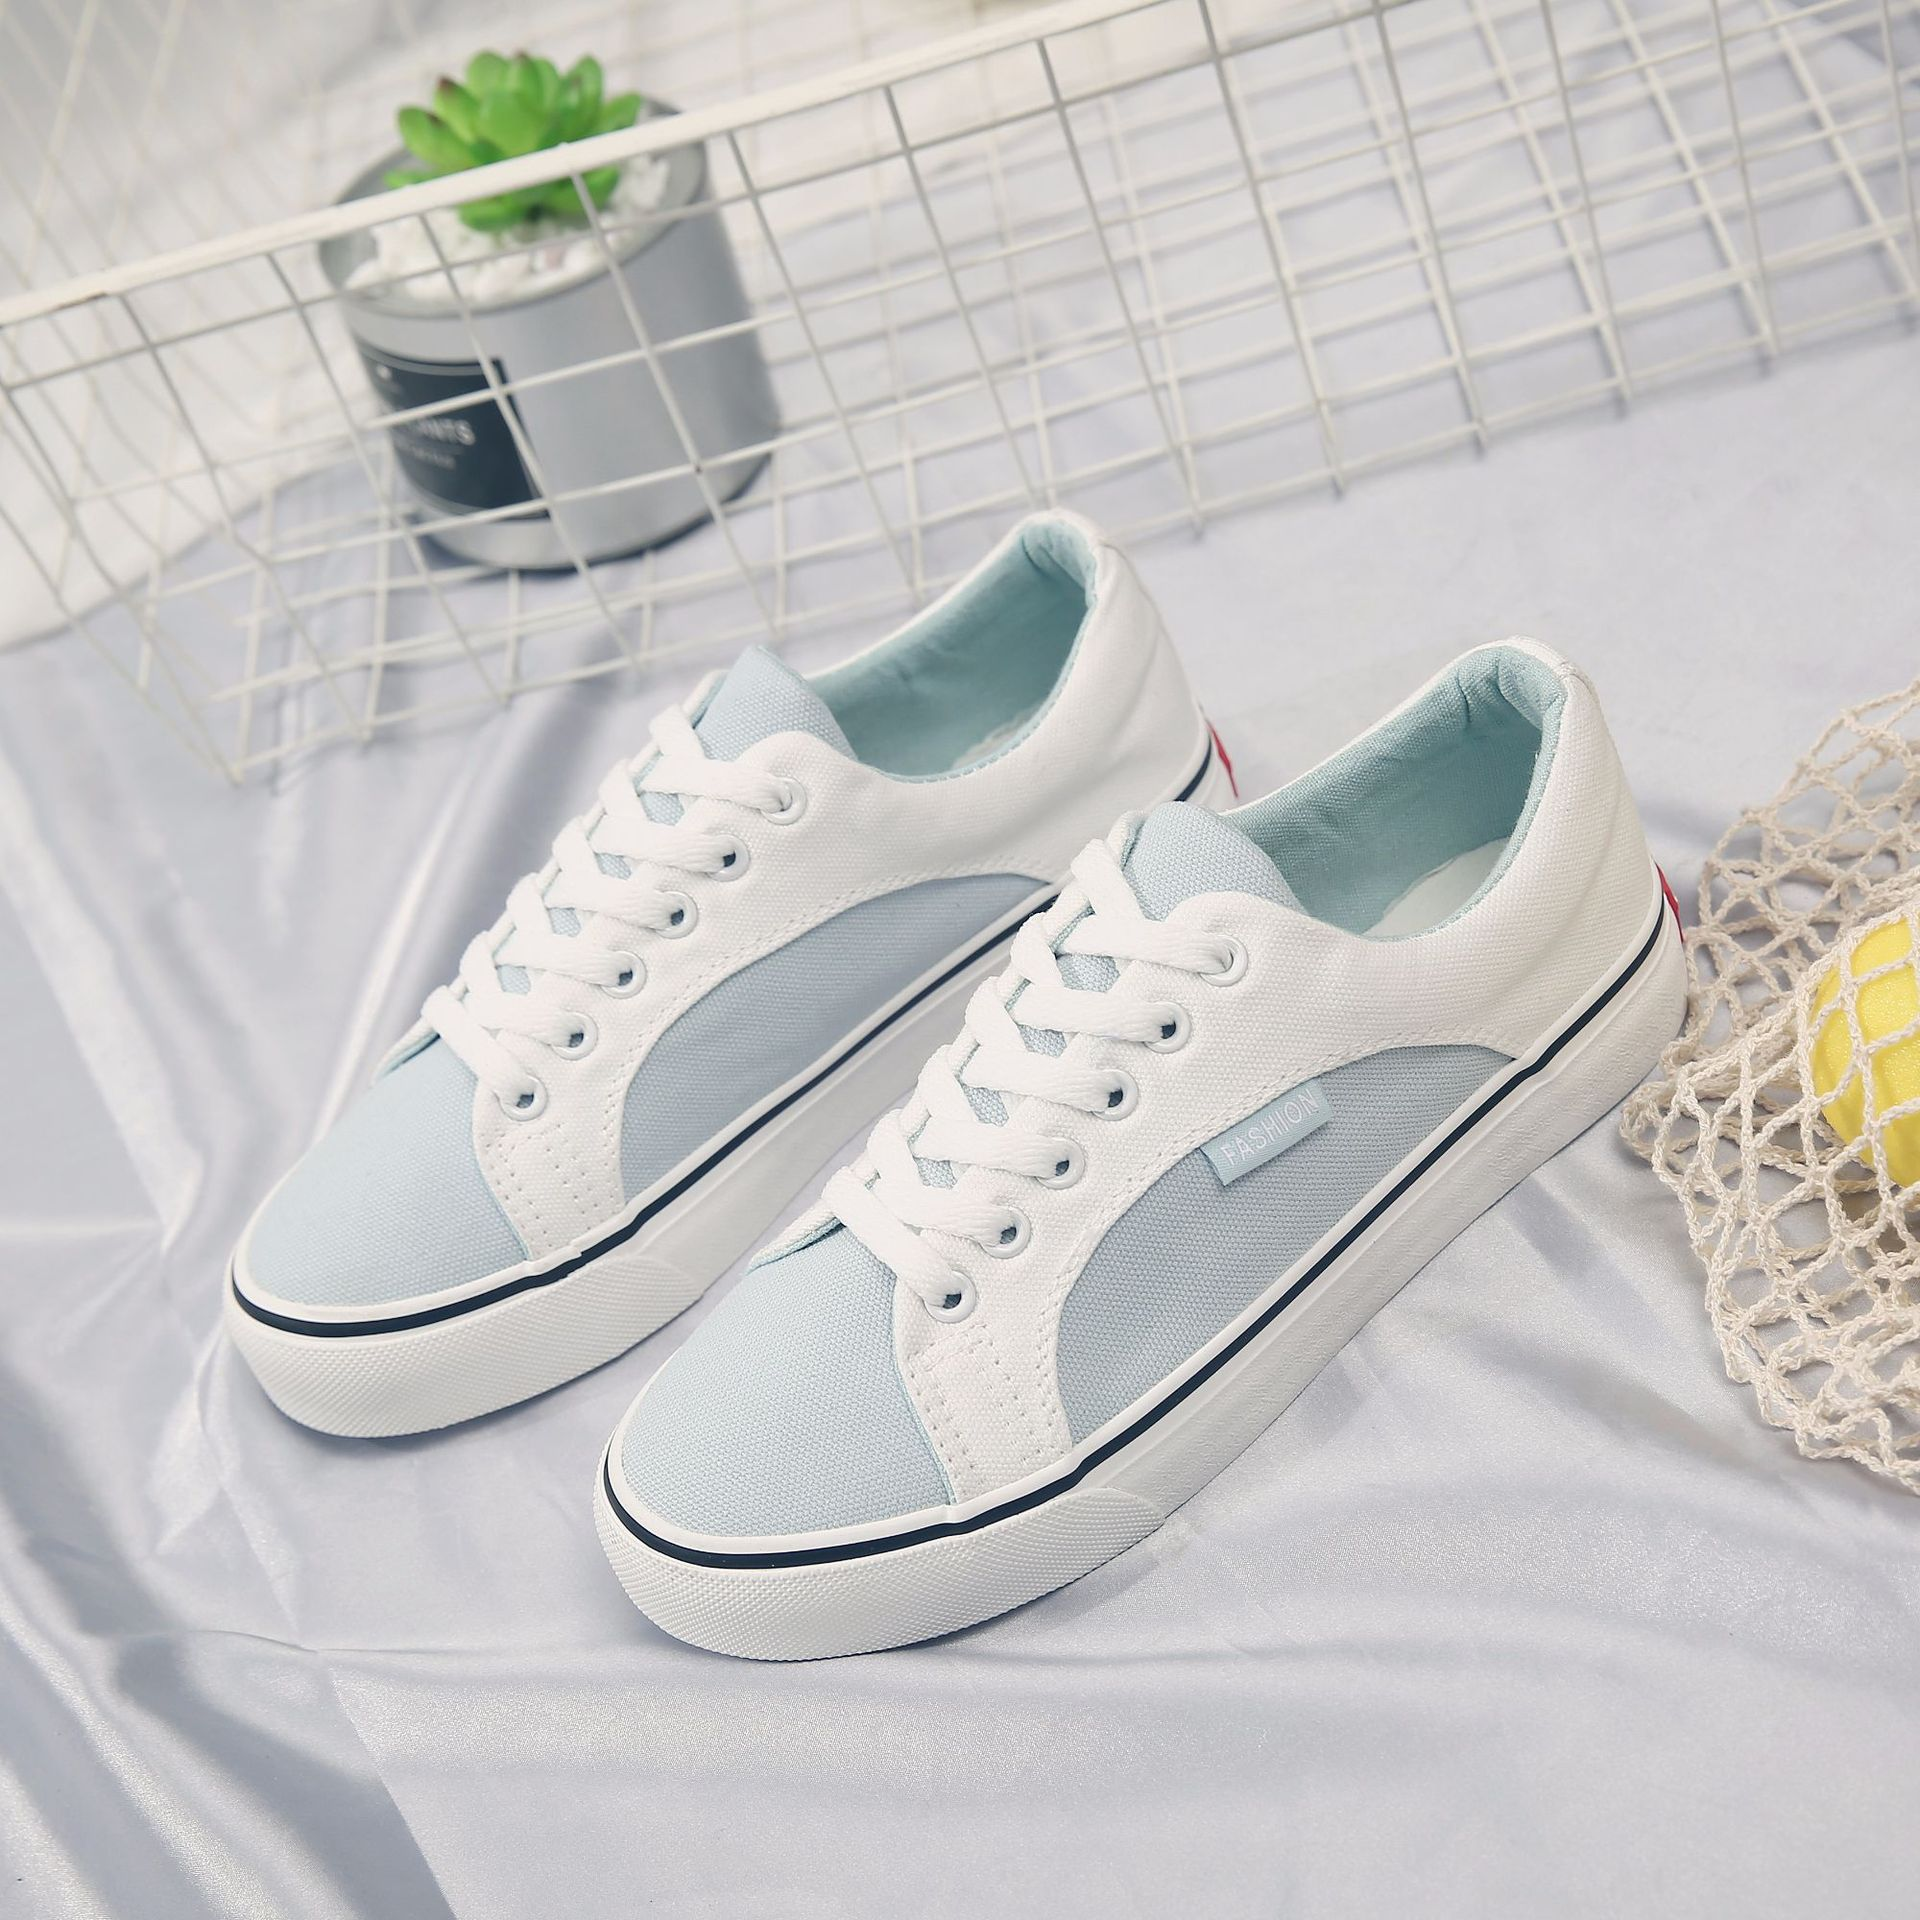 50fc284533e US $20.85 30% OFF|Women Spring Shoes 2018 New Canvas Shoes for Female  Zapatillas Deportivas Mujer Chaussure Femme Lady White Shoes Sneakers 35  40-in ...